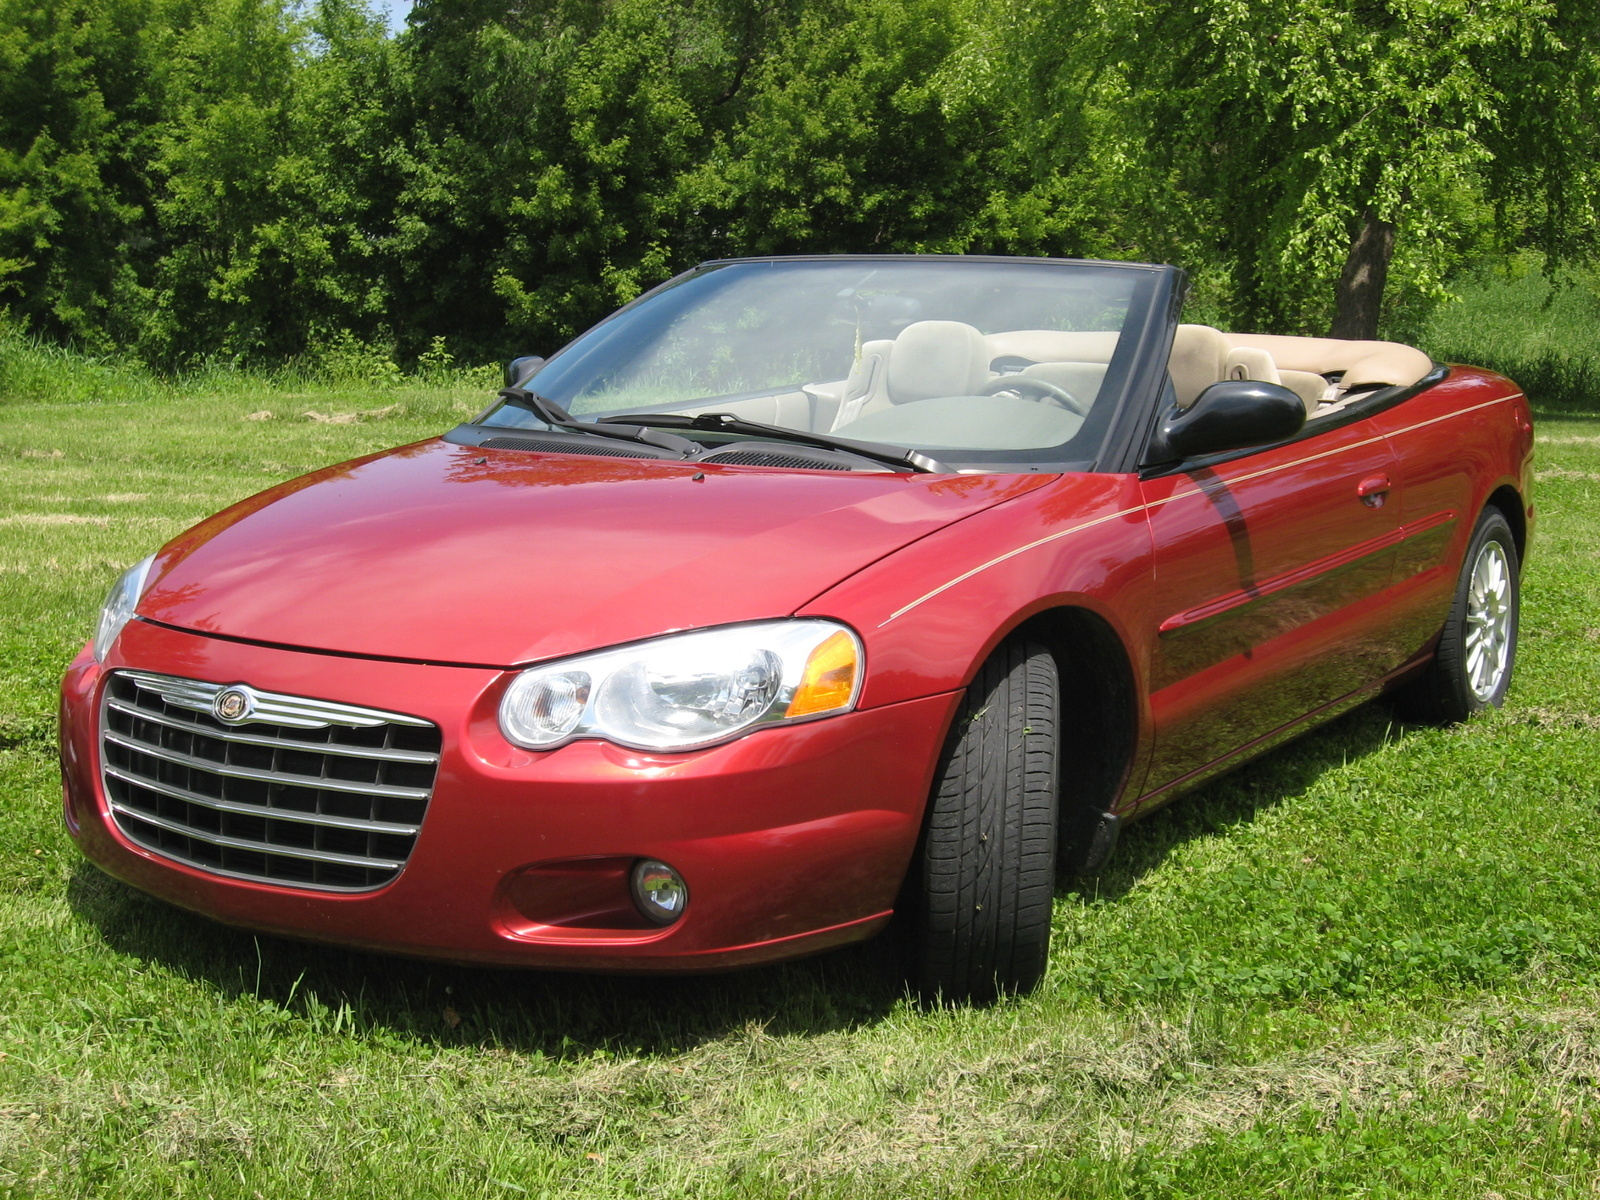 2004 chrysler sebring gas mileage